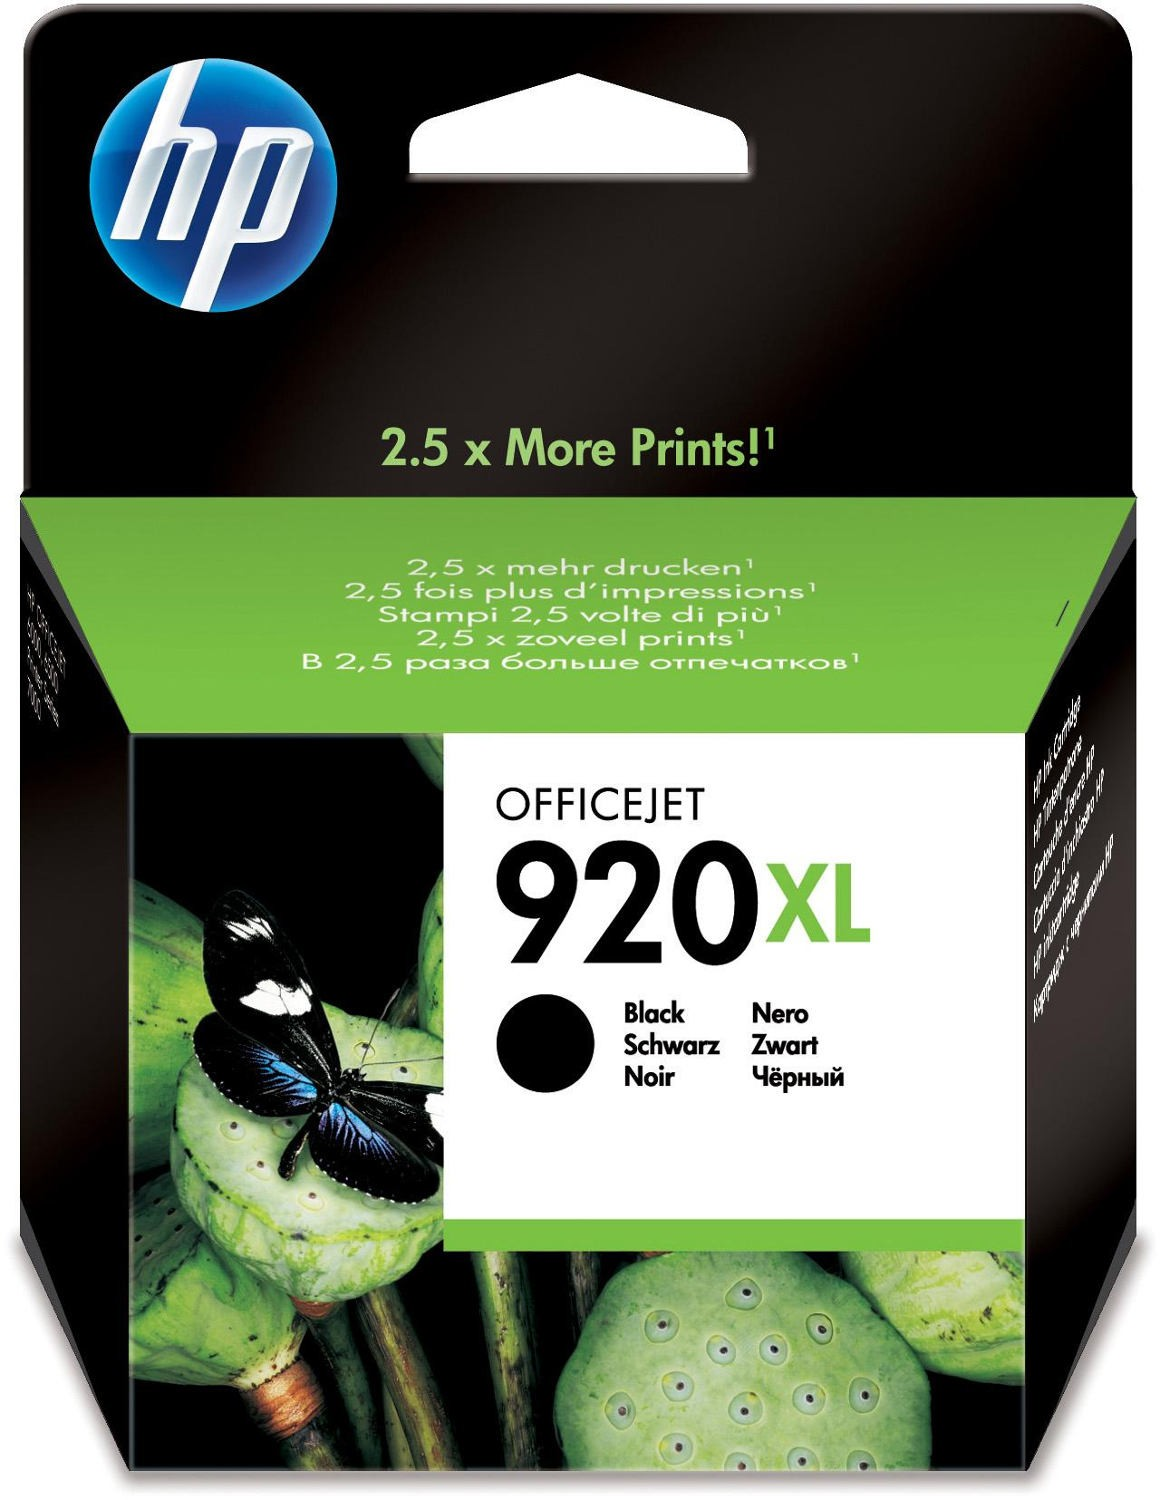 HEWLETT PACKARD - CD 975 AE